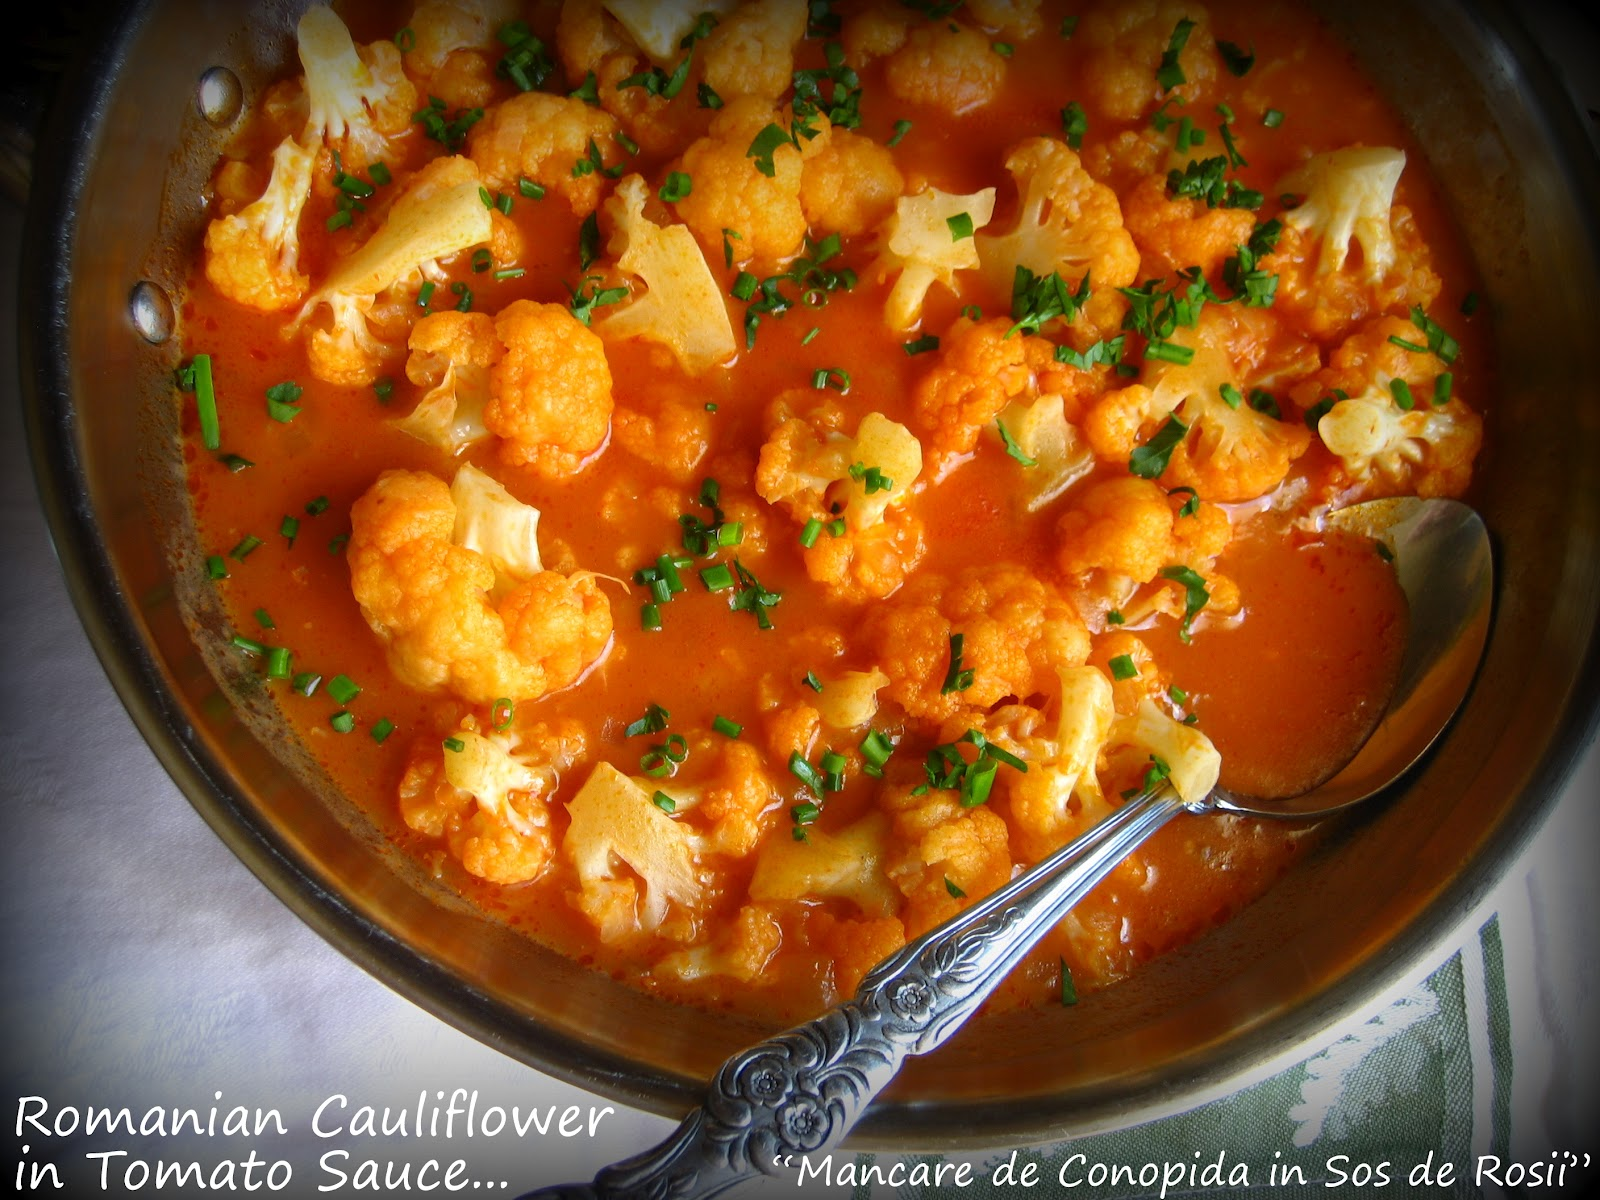 Home Cooking In Montana: Romanian Cauliflower in Tomato Sauce ...